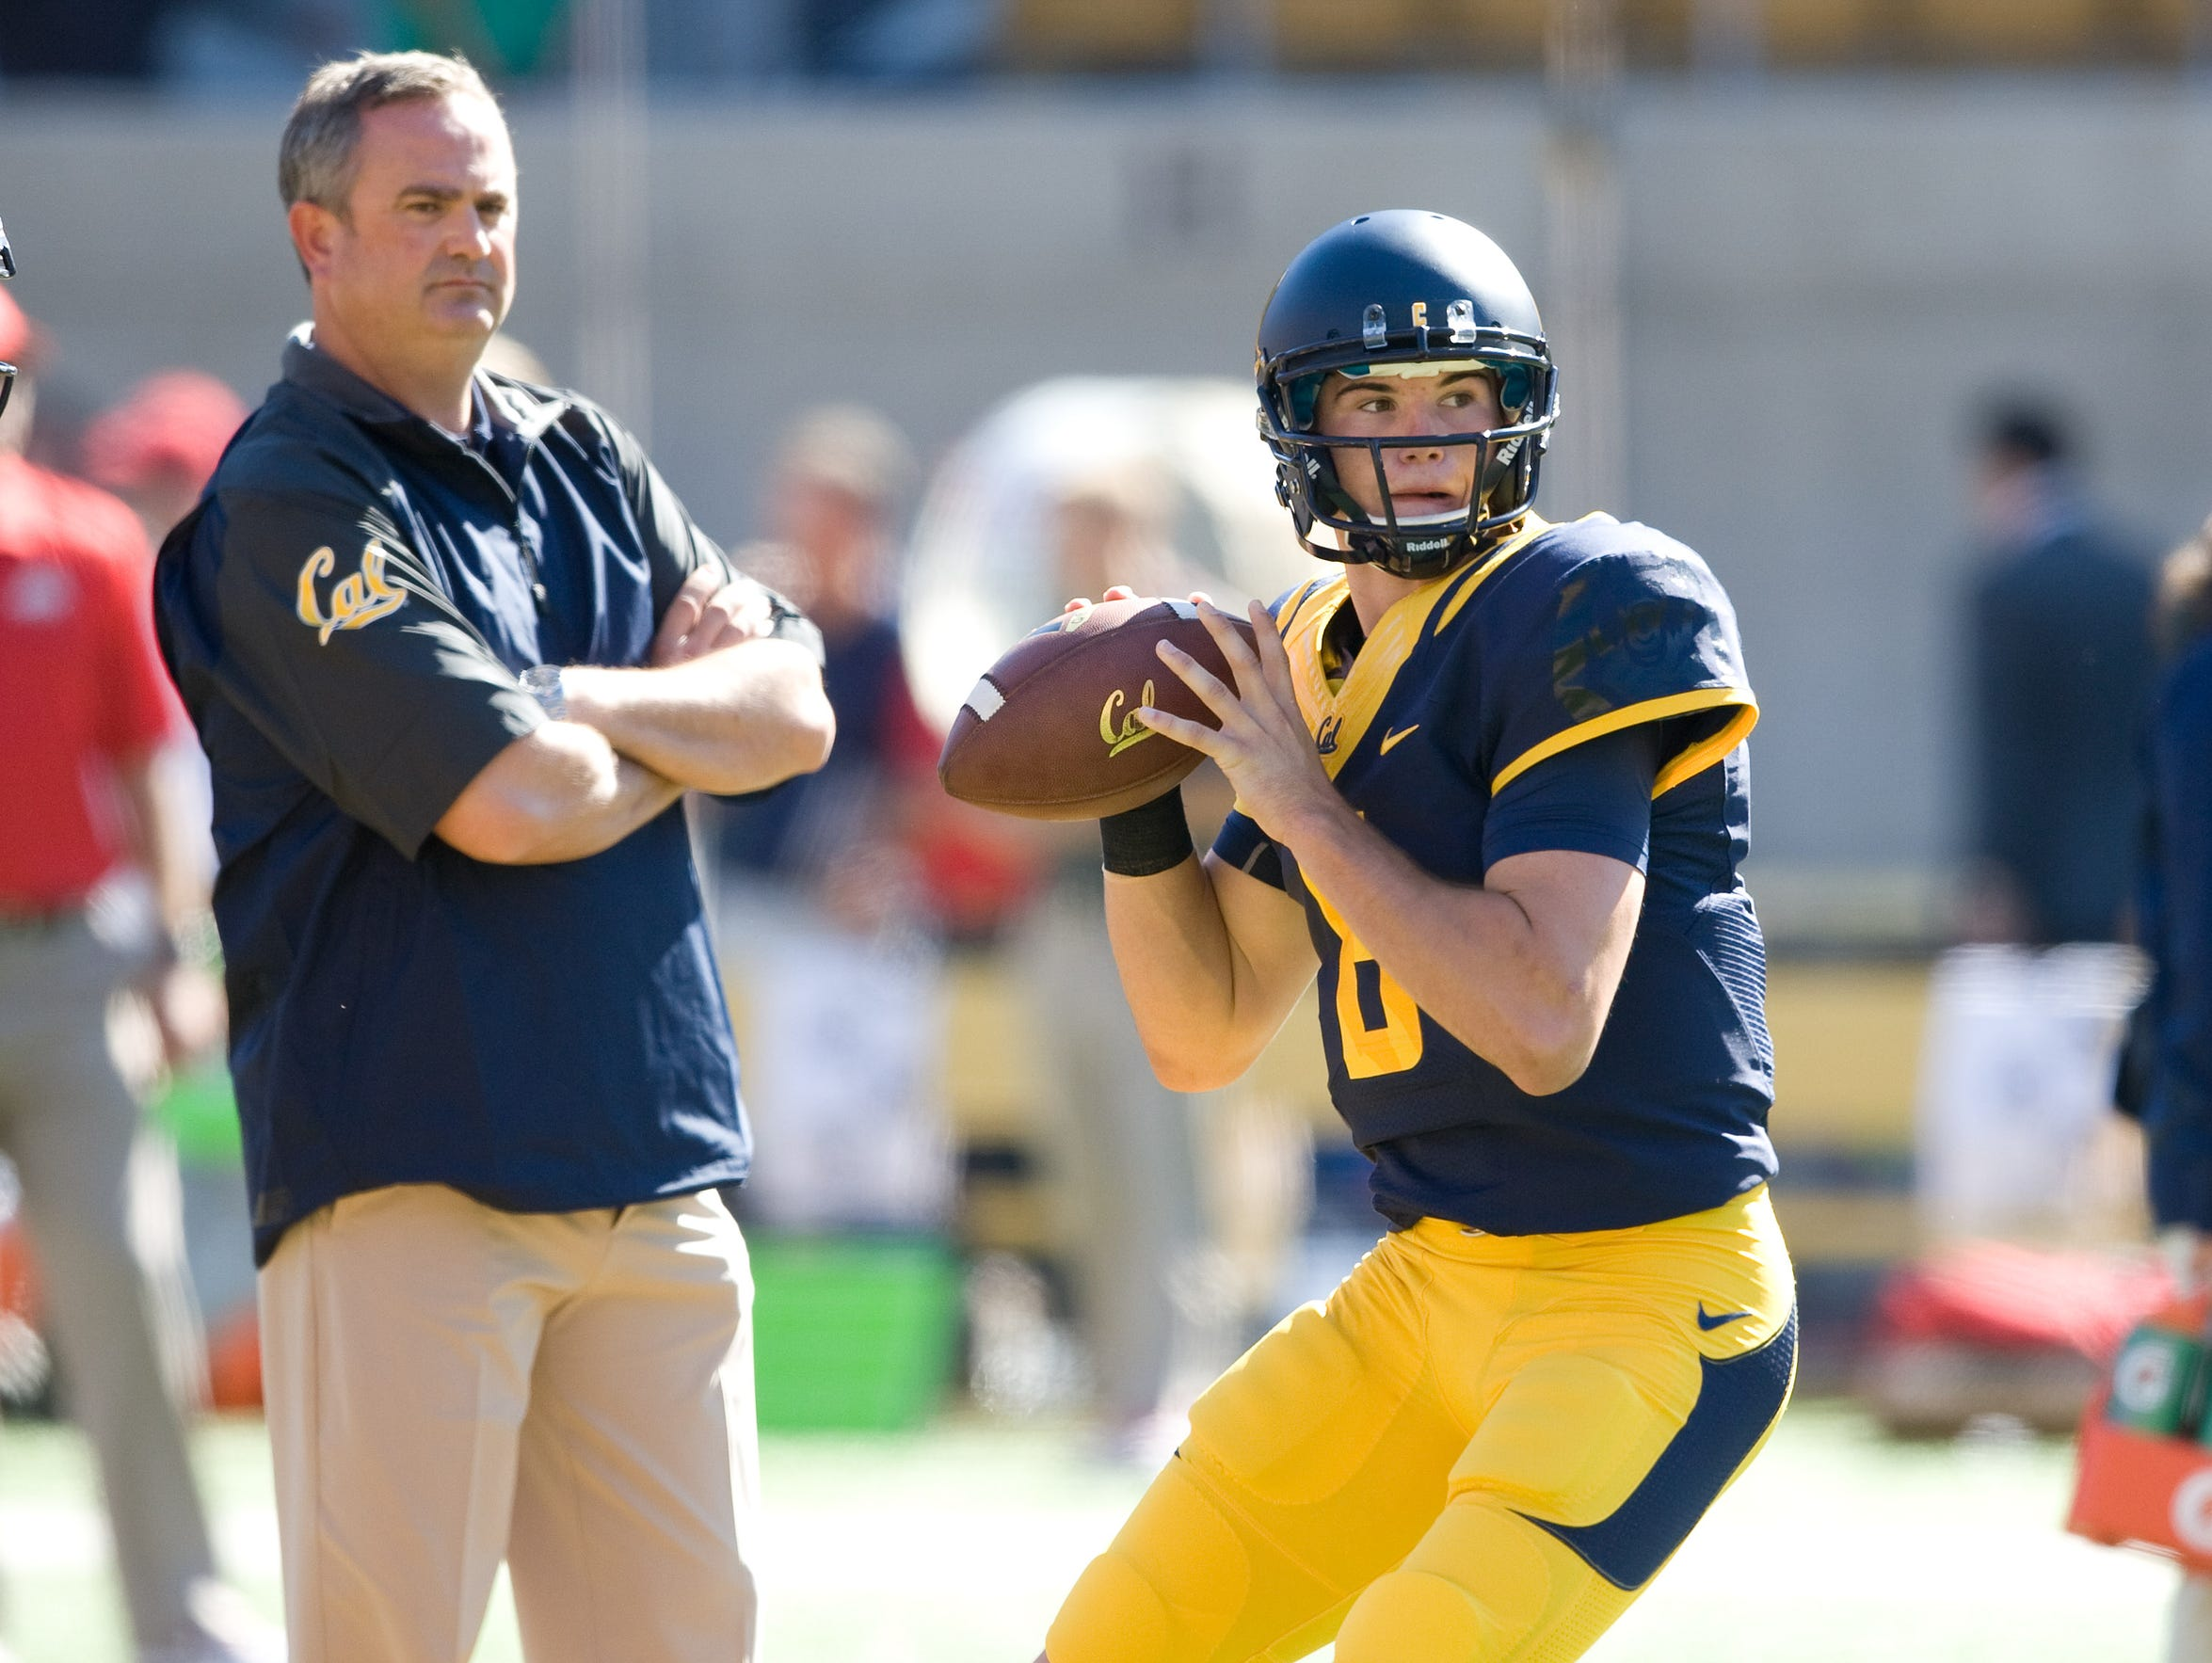 Cal coach Sonny Dykes observes Zach Kline during warmups